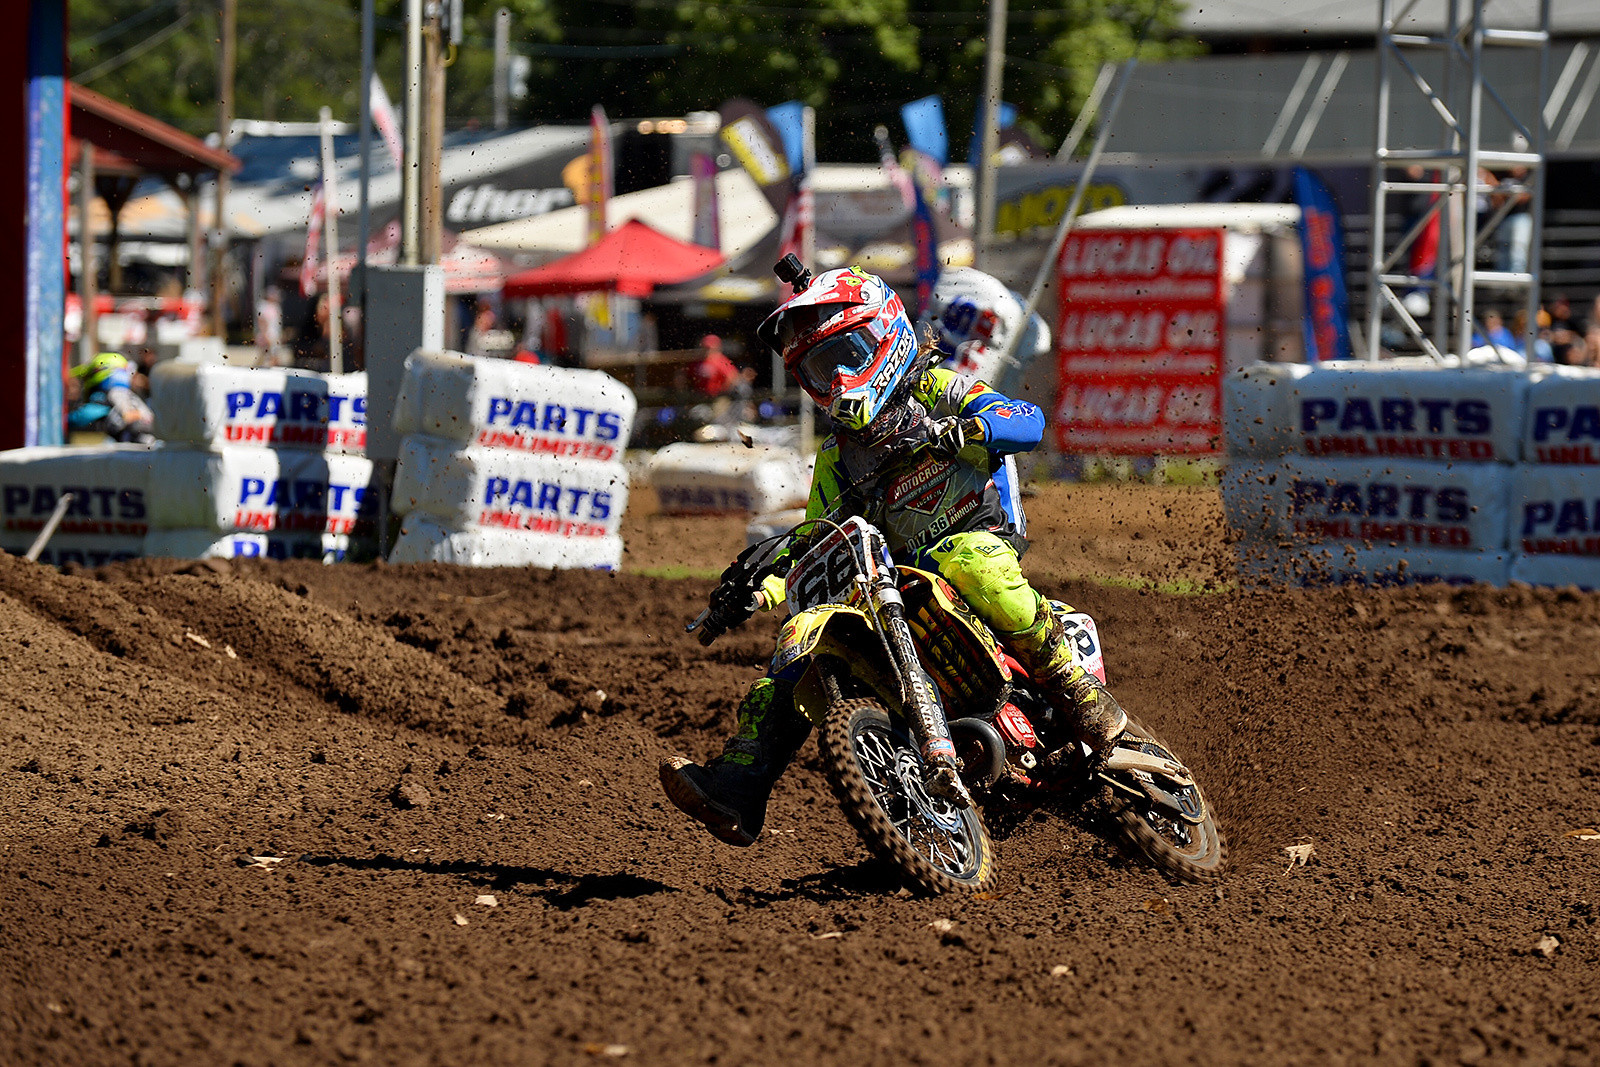 2-2-1 moto scores earned Cobra's Casey Cochran the Loretta Lynn's National Championship in the 65 (10-11) Limited class.